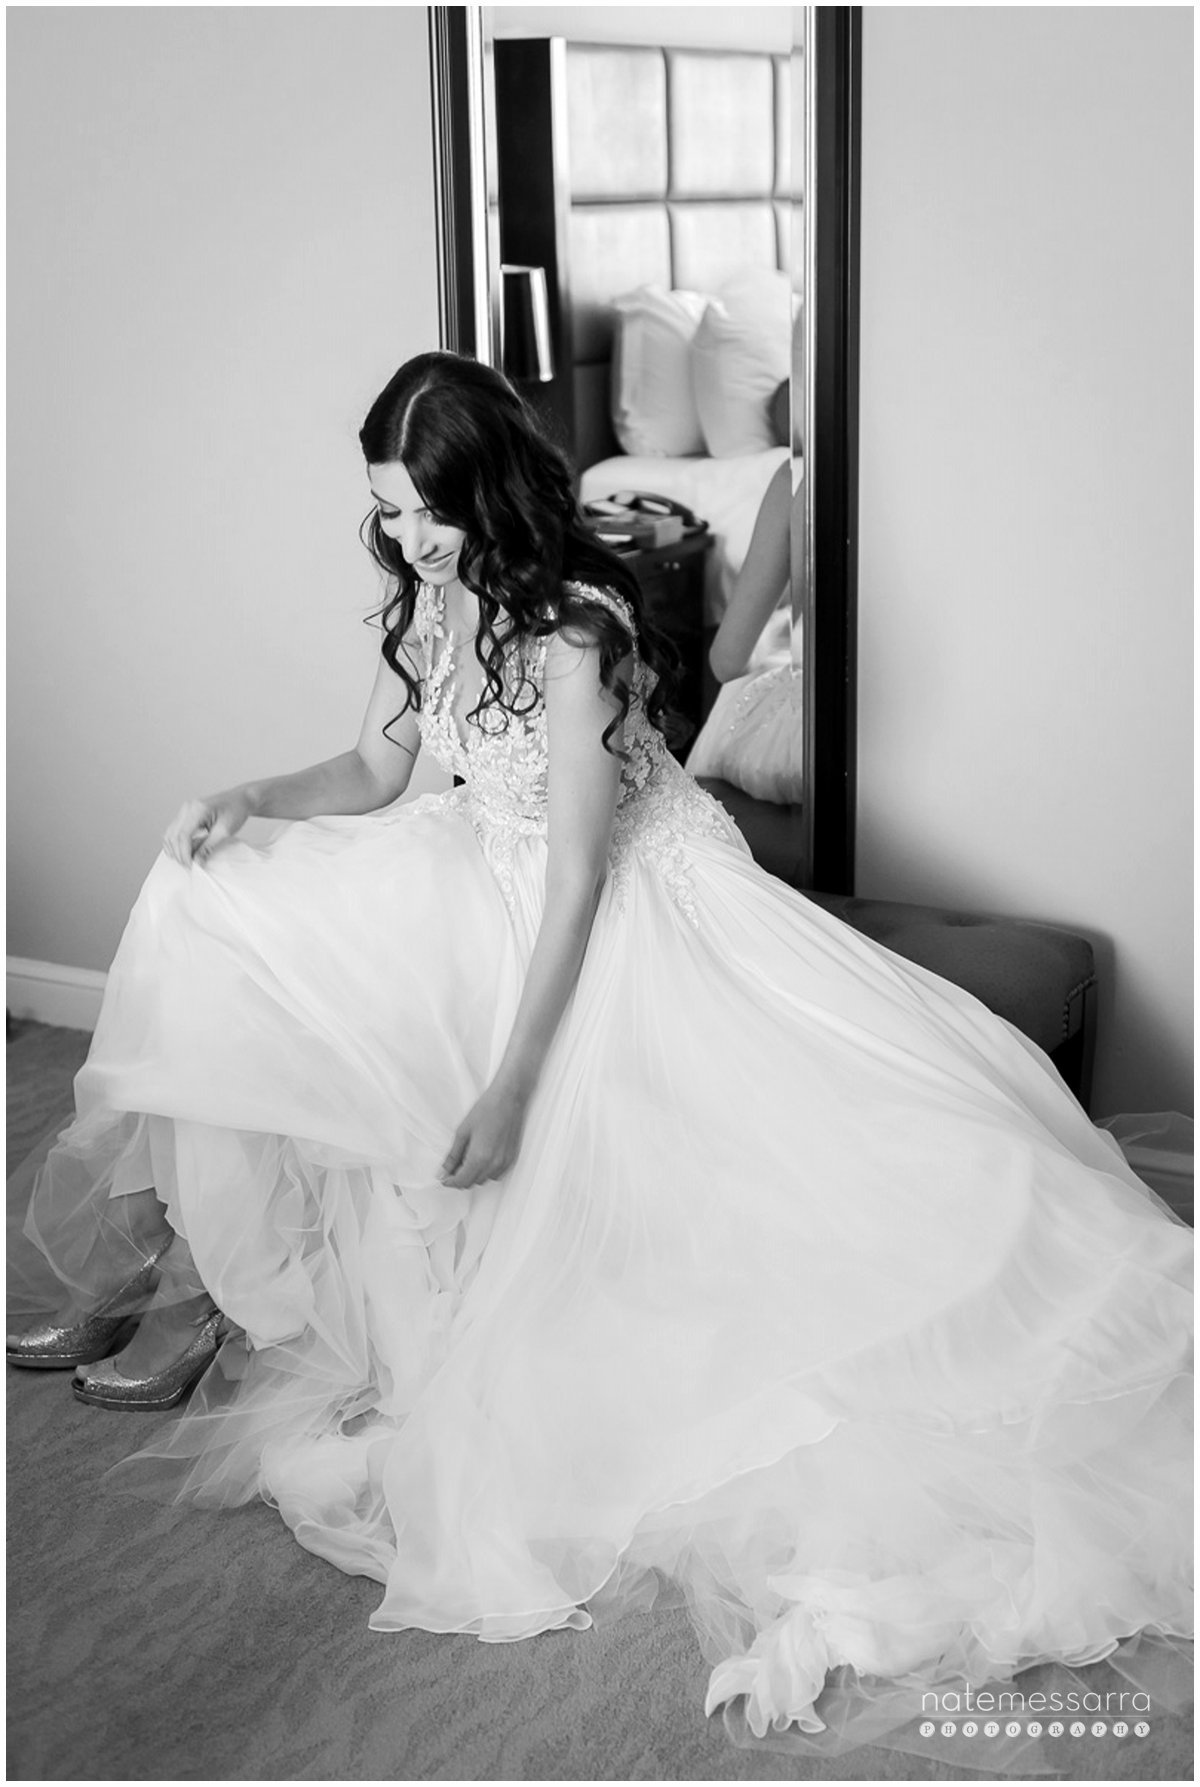 St Regis Houston Wedding - Bride Getting Ready